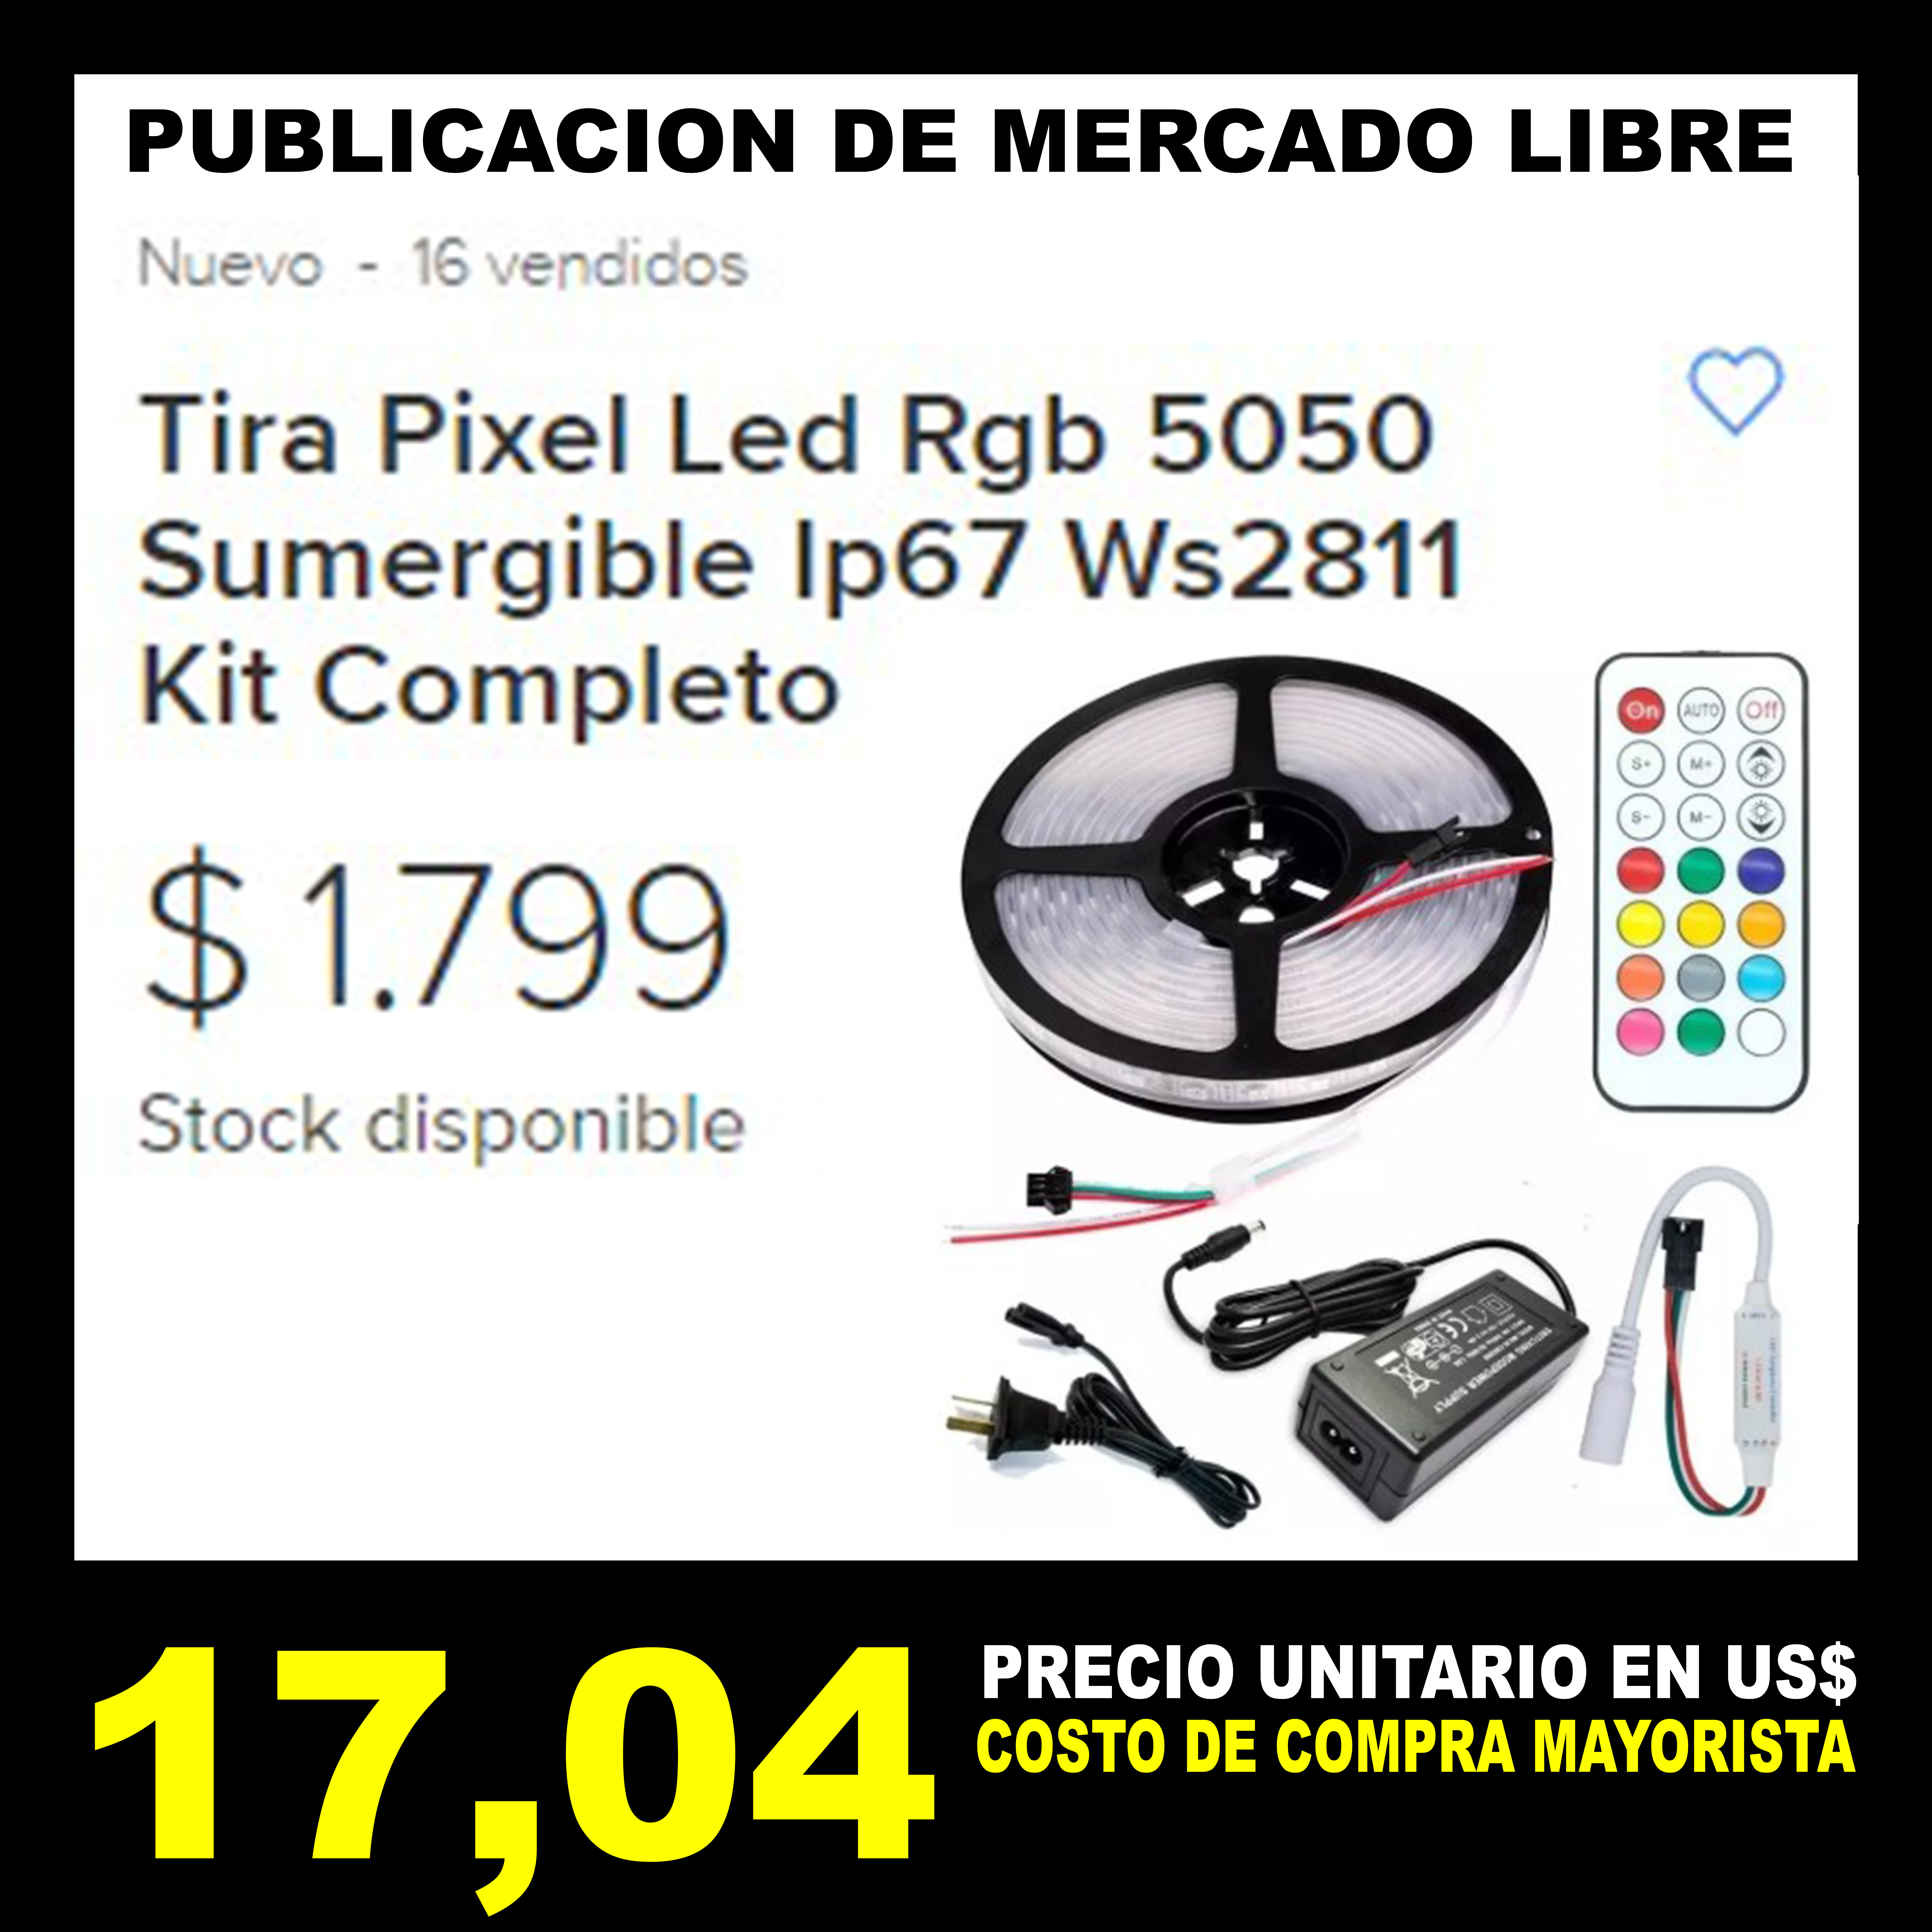 MLD Tira Pixel Led Rgb 5050 Sumergible Ip67 Ws2811 Kit Com